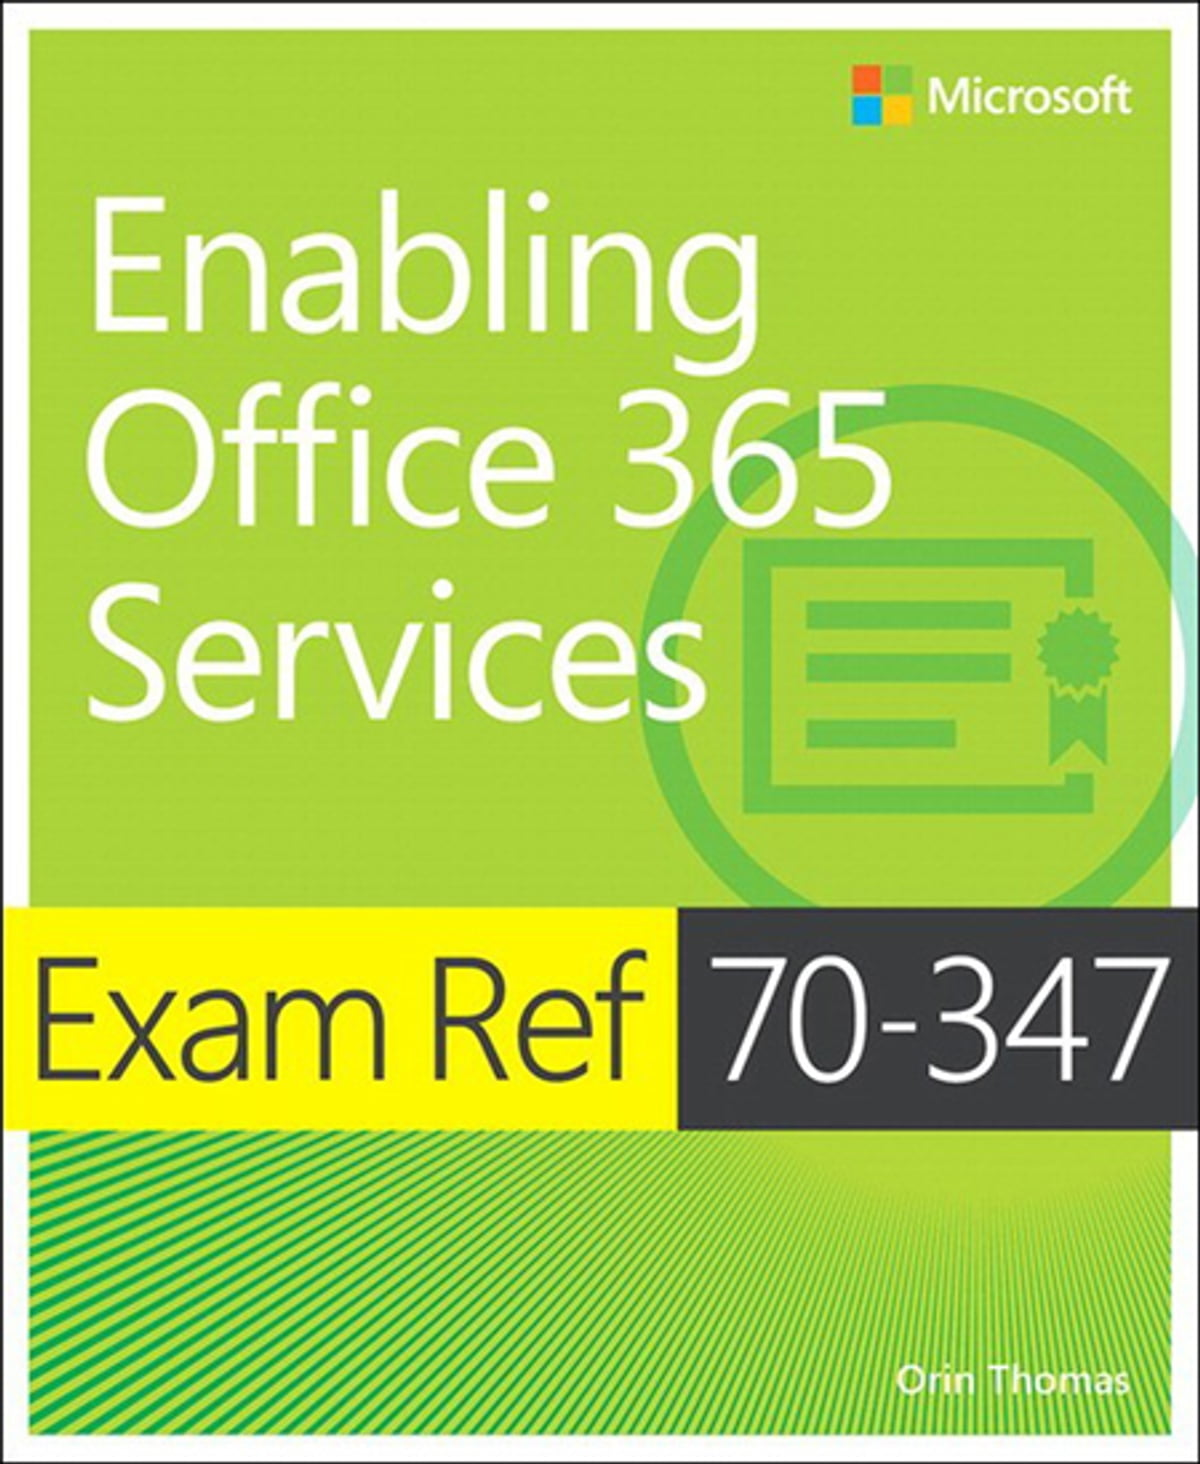 Exam Ref 70347 Enabling Office 365 Services Ebook By Orin Thomas